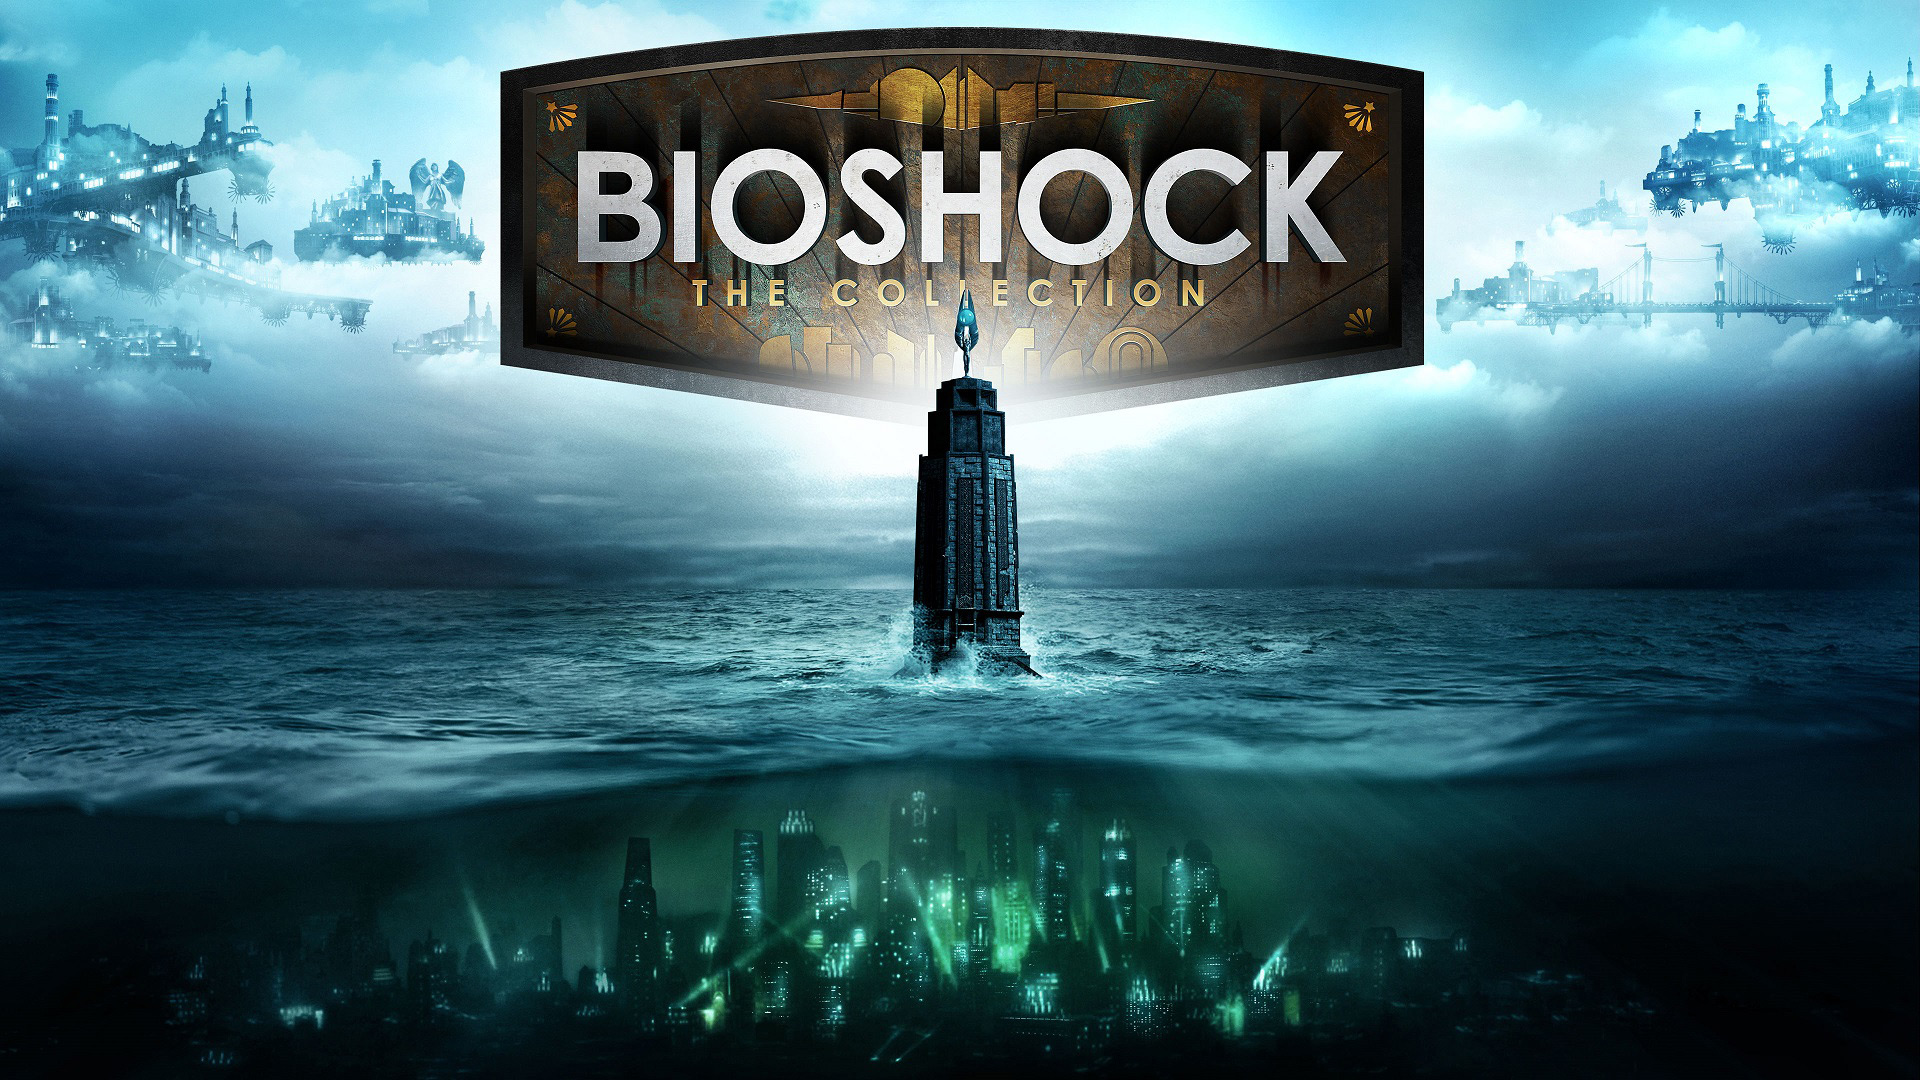 bioshock_collection_hero.jpg